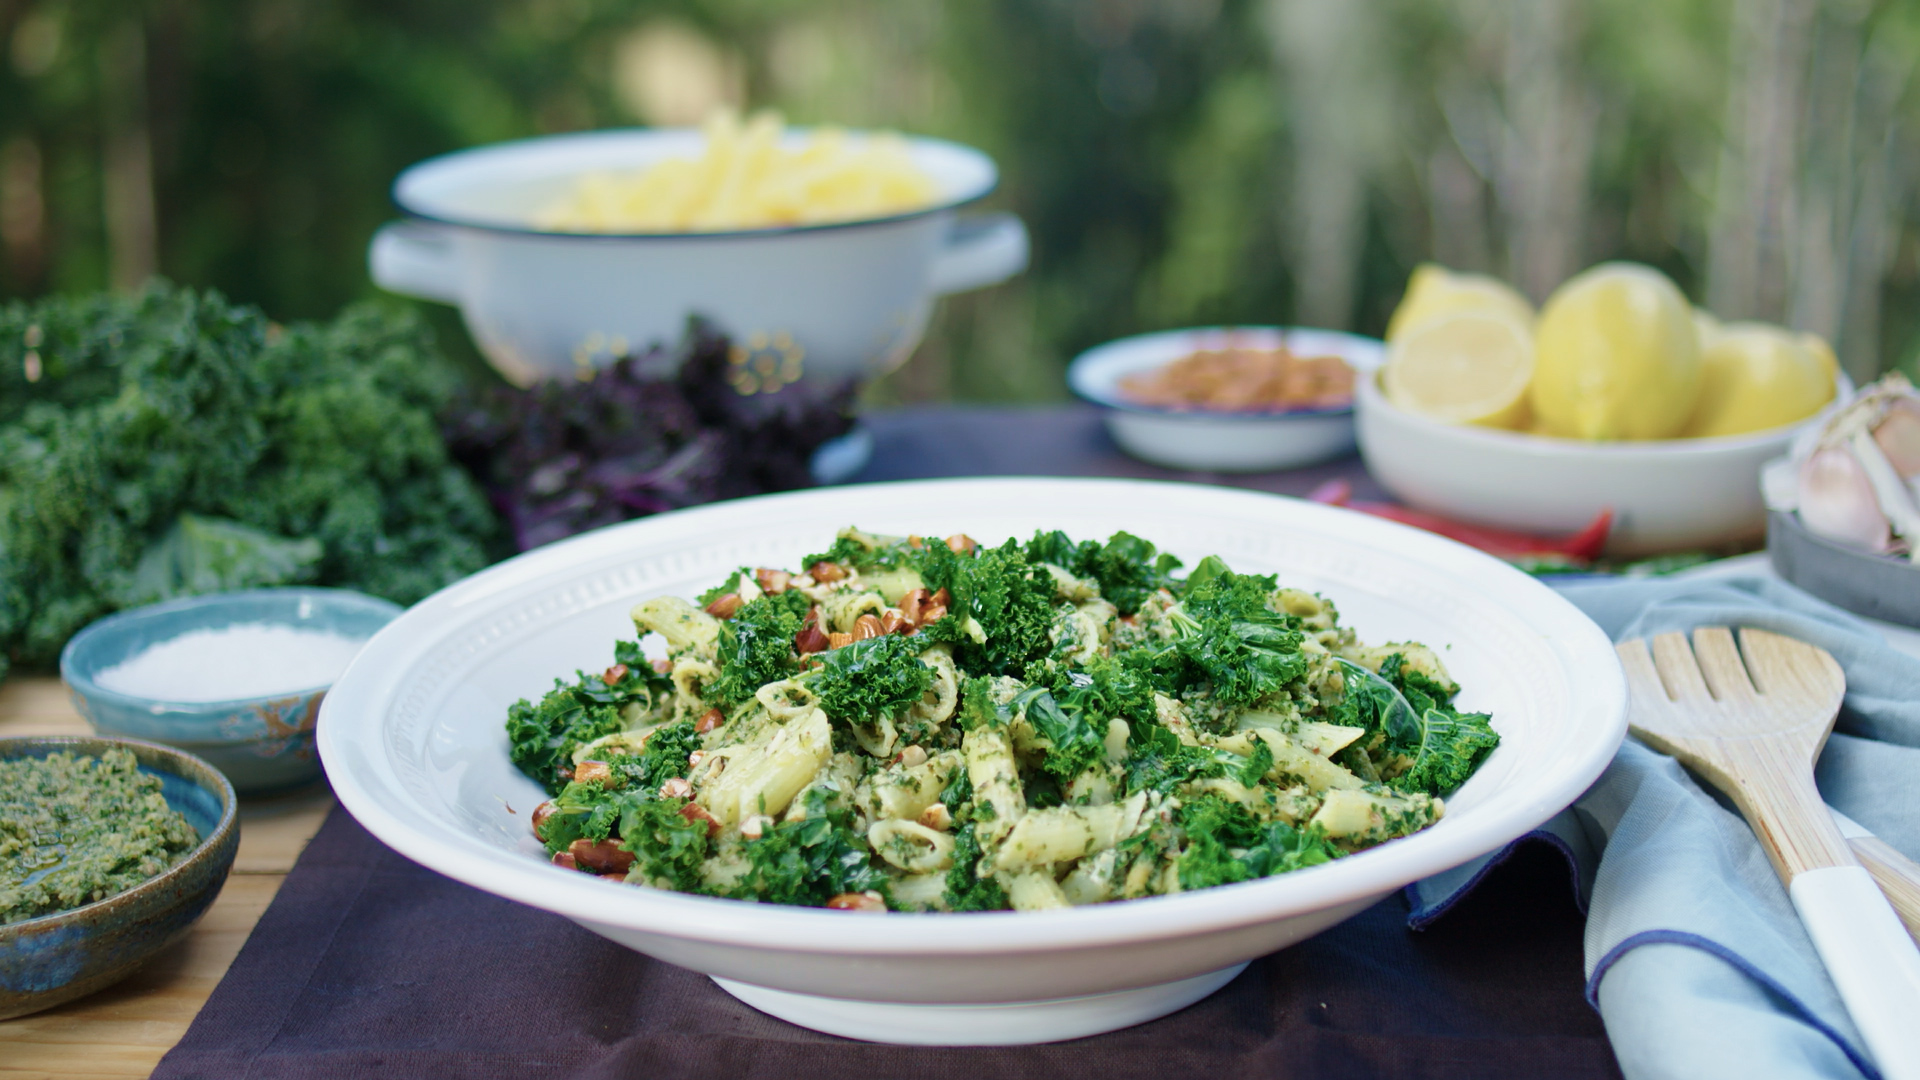 Kale Almond and Tuna Pesto with Penne